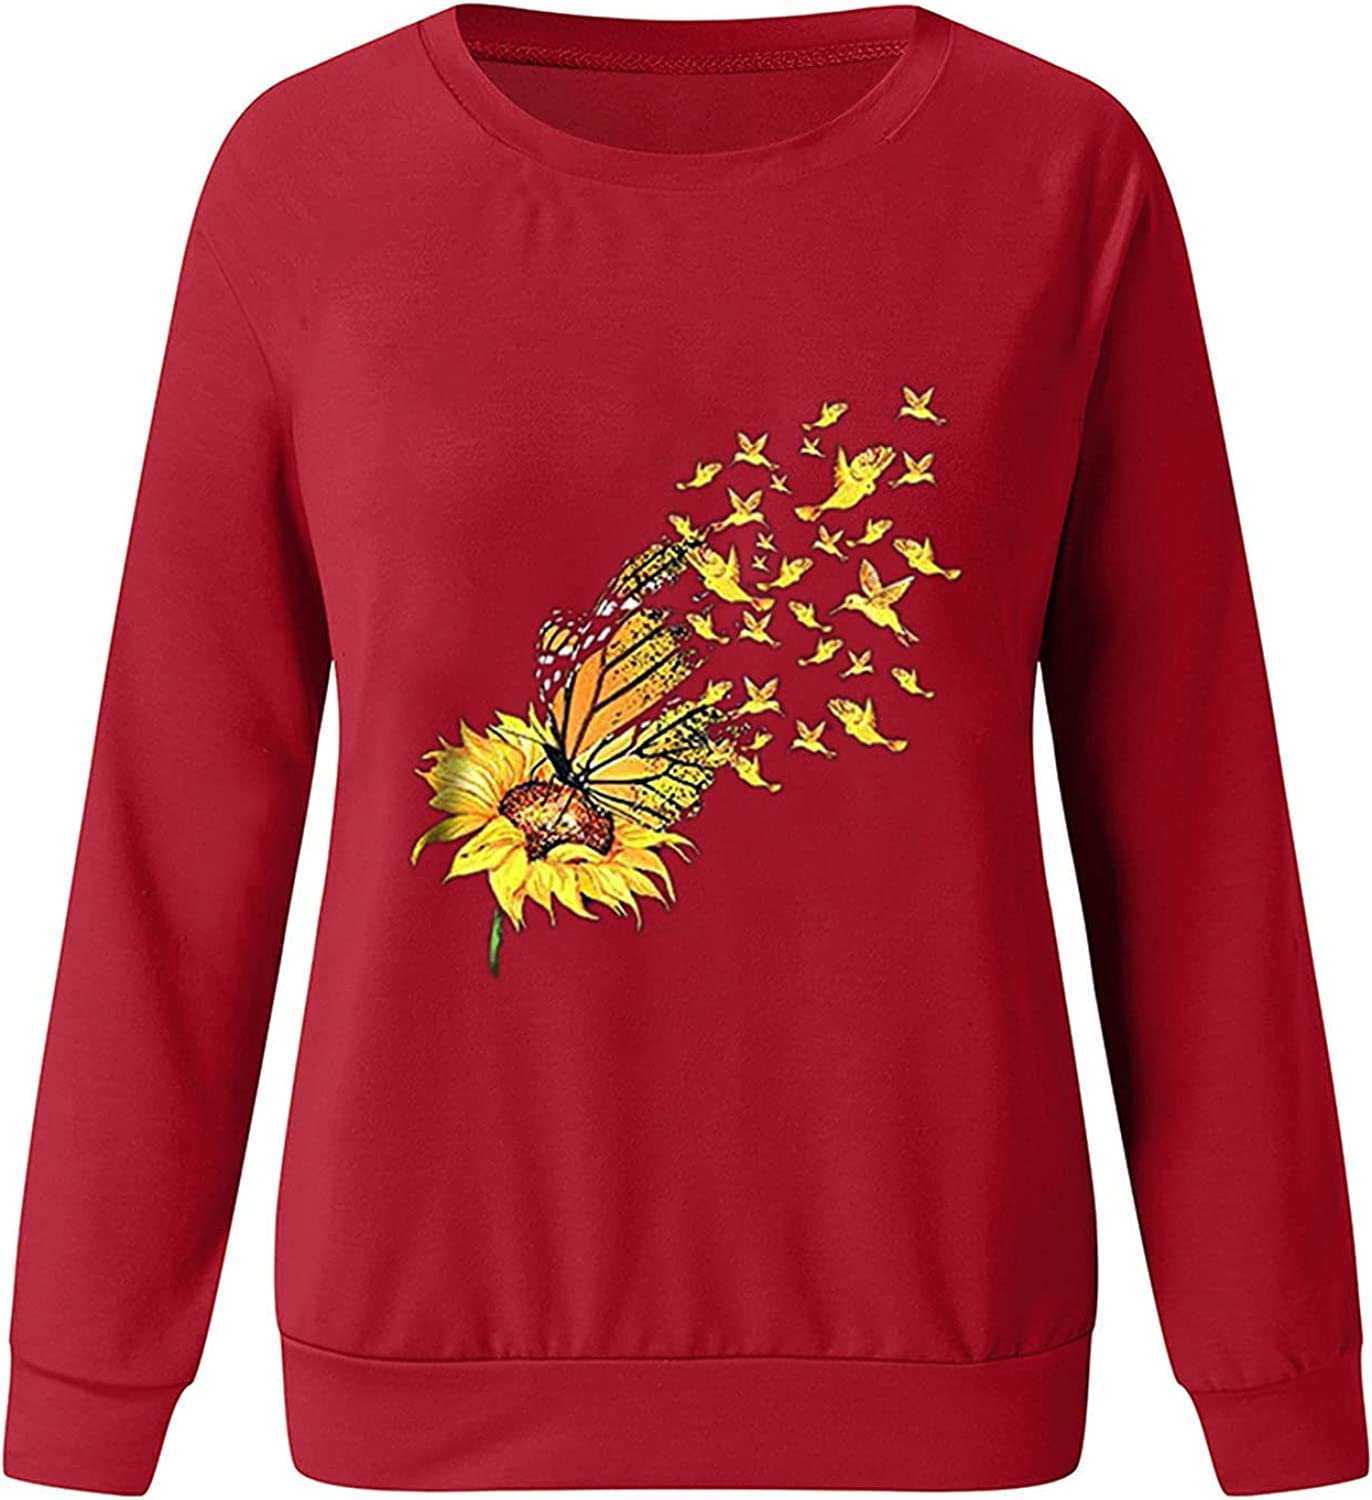 Womens Blouse Top,Womens Casual Long Sleeve Sunflower Print Graphic Tee Tops for Leggings Fashion Blouse Shirts Tunic